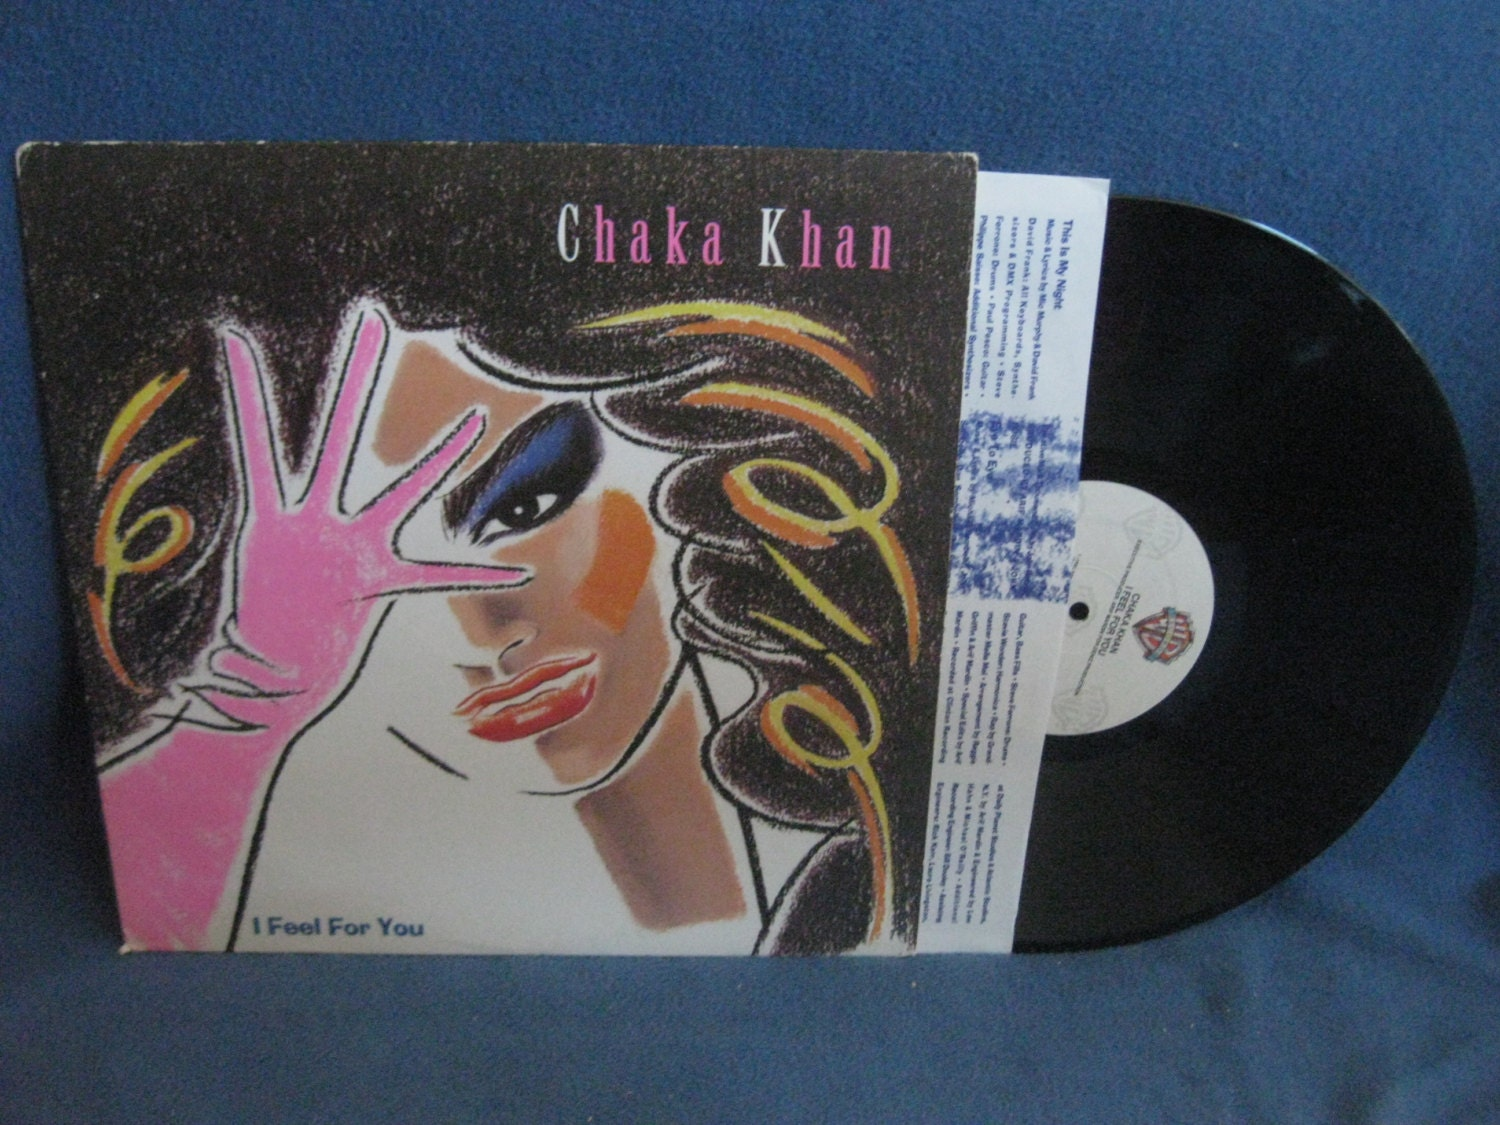 Vintage Chaka Khan I Feel For You Vinyl LP